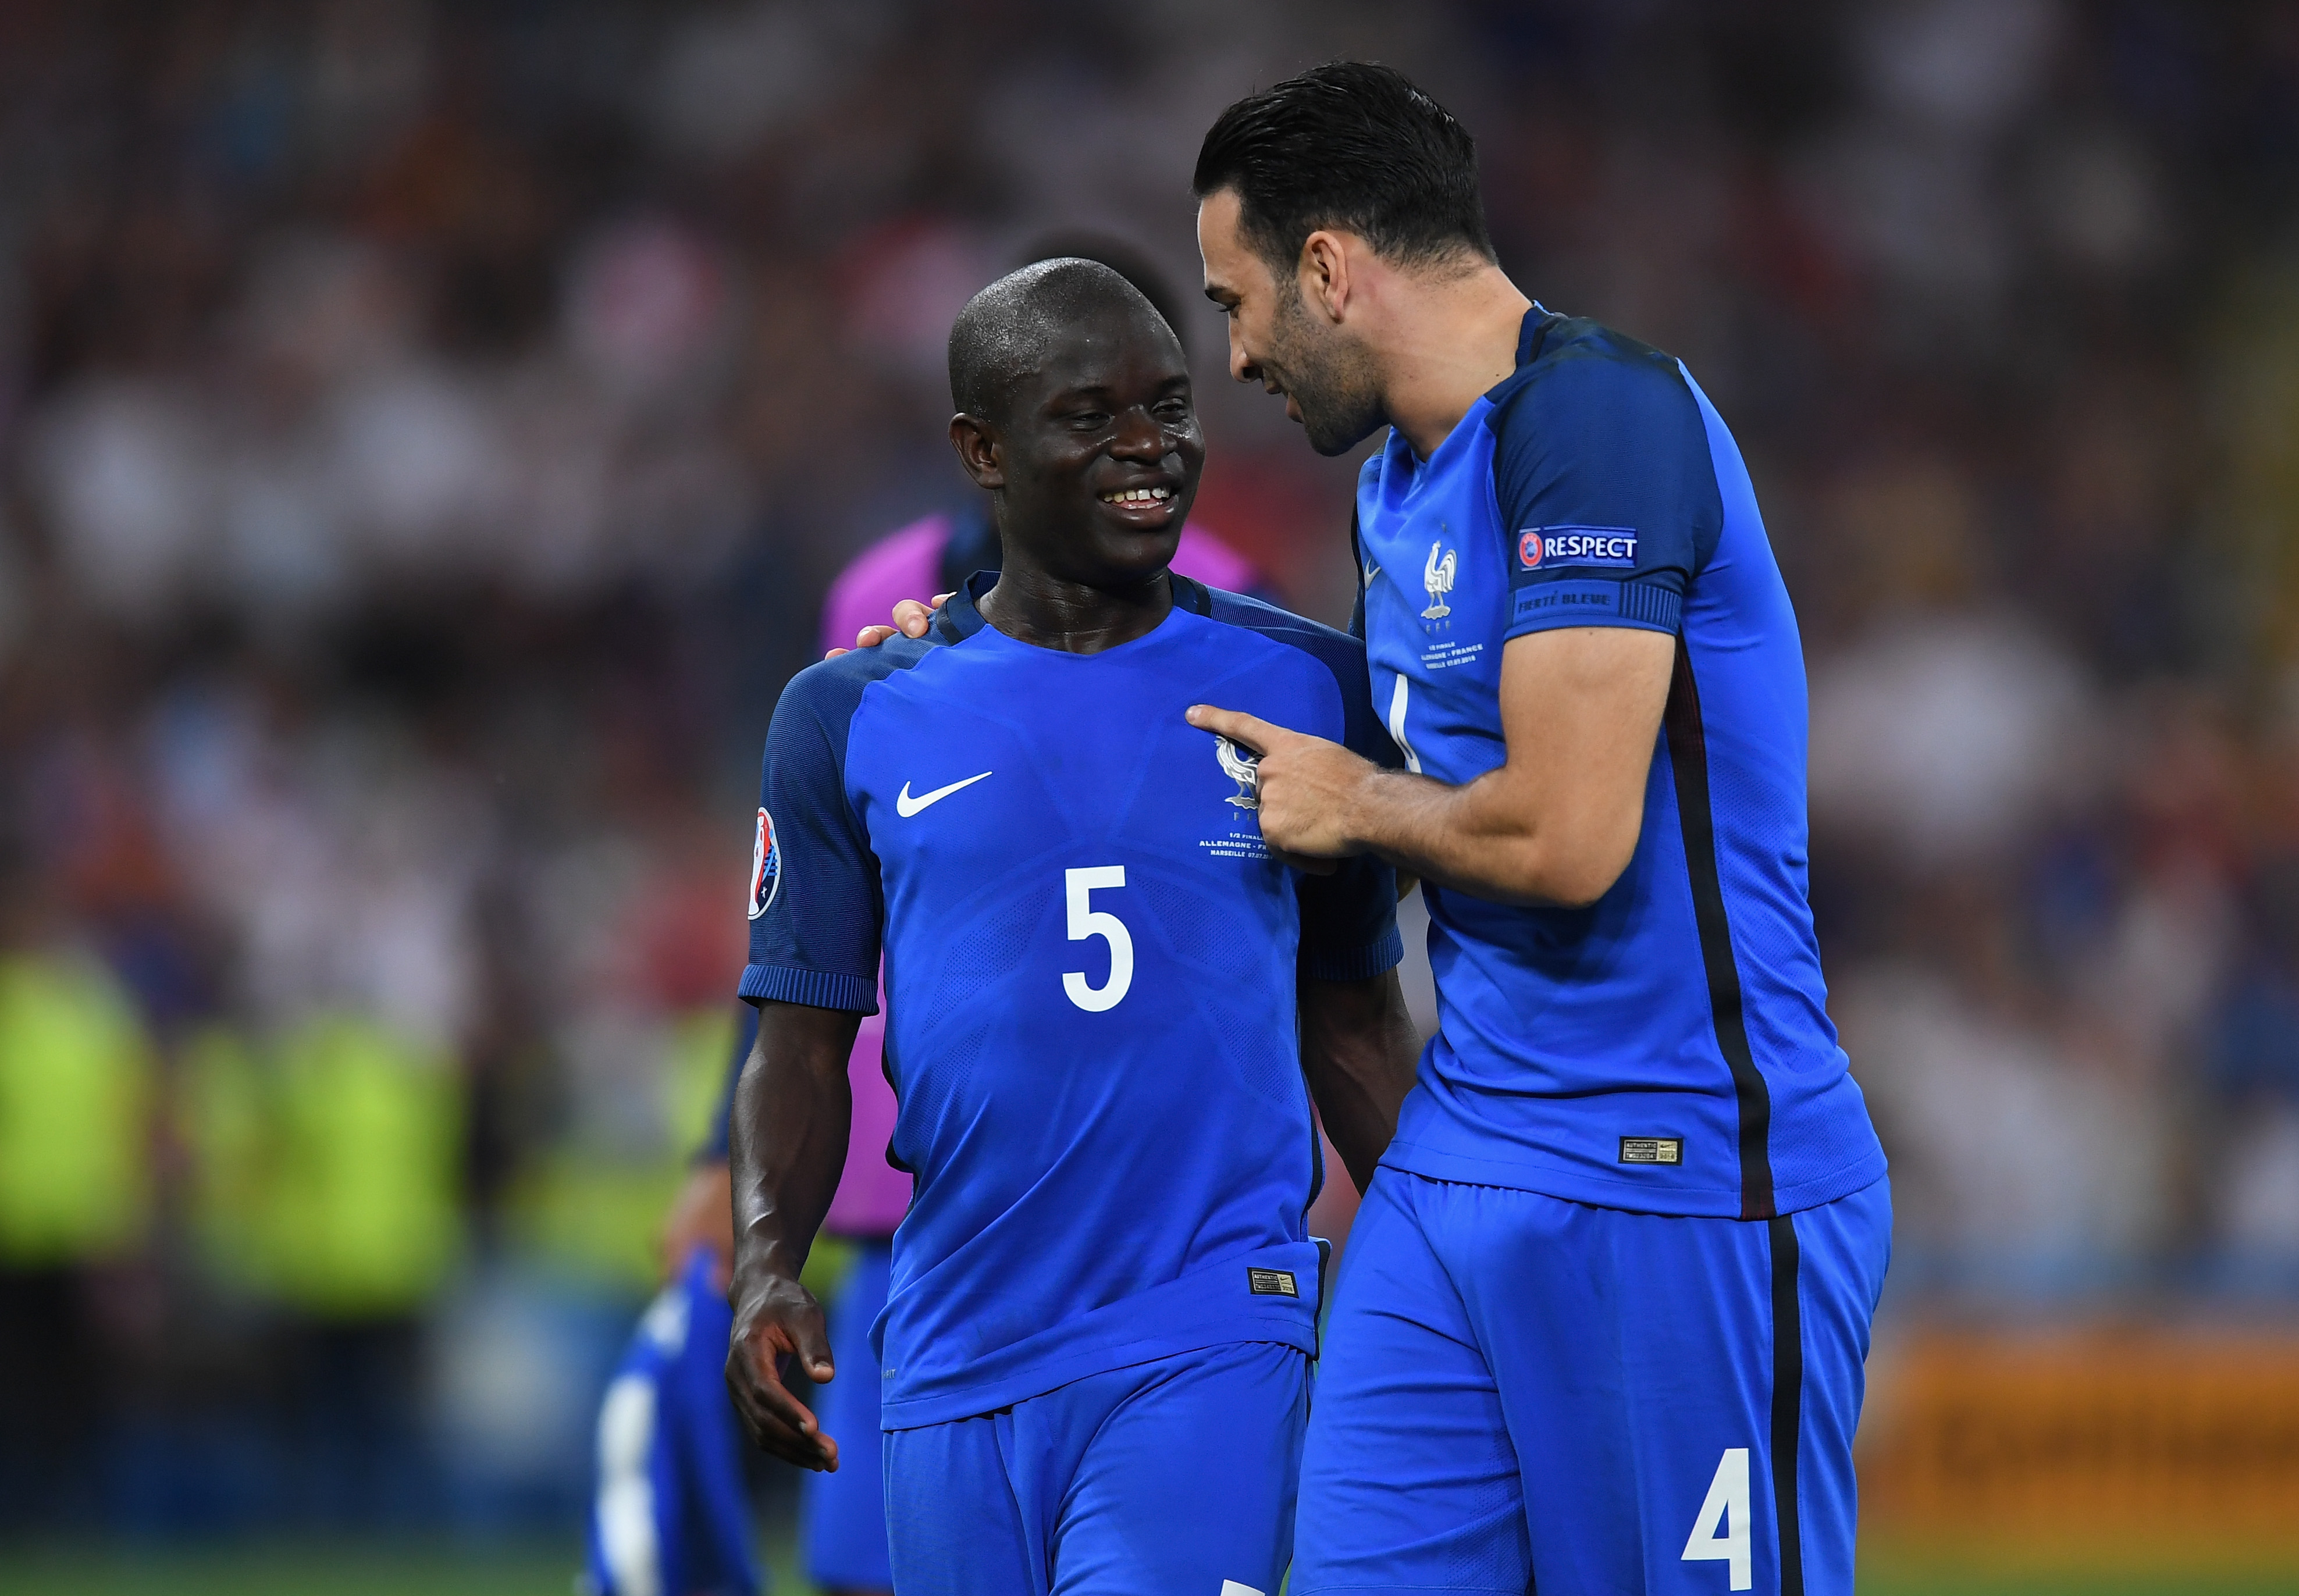 N'Golo Kante medical done, expected to sign Chelsea paperwork tonight - report